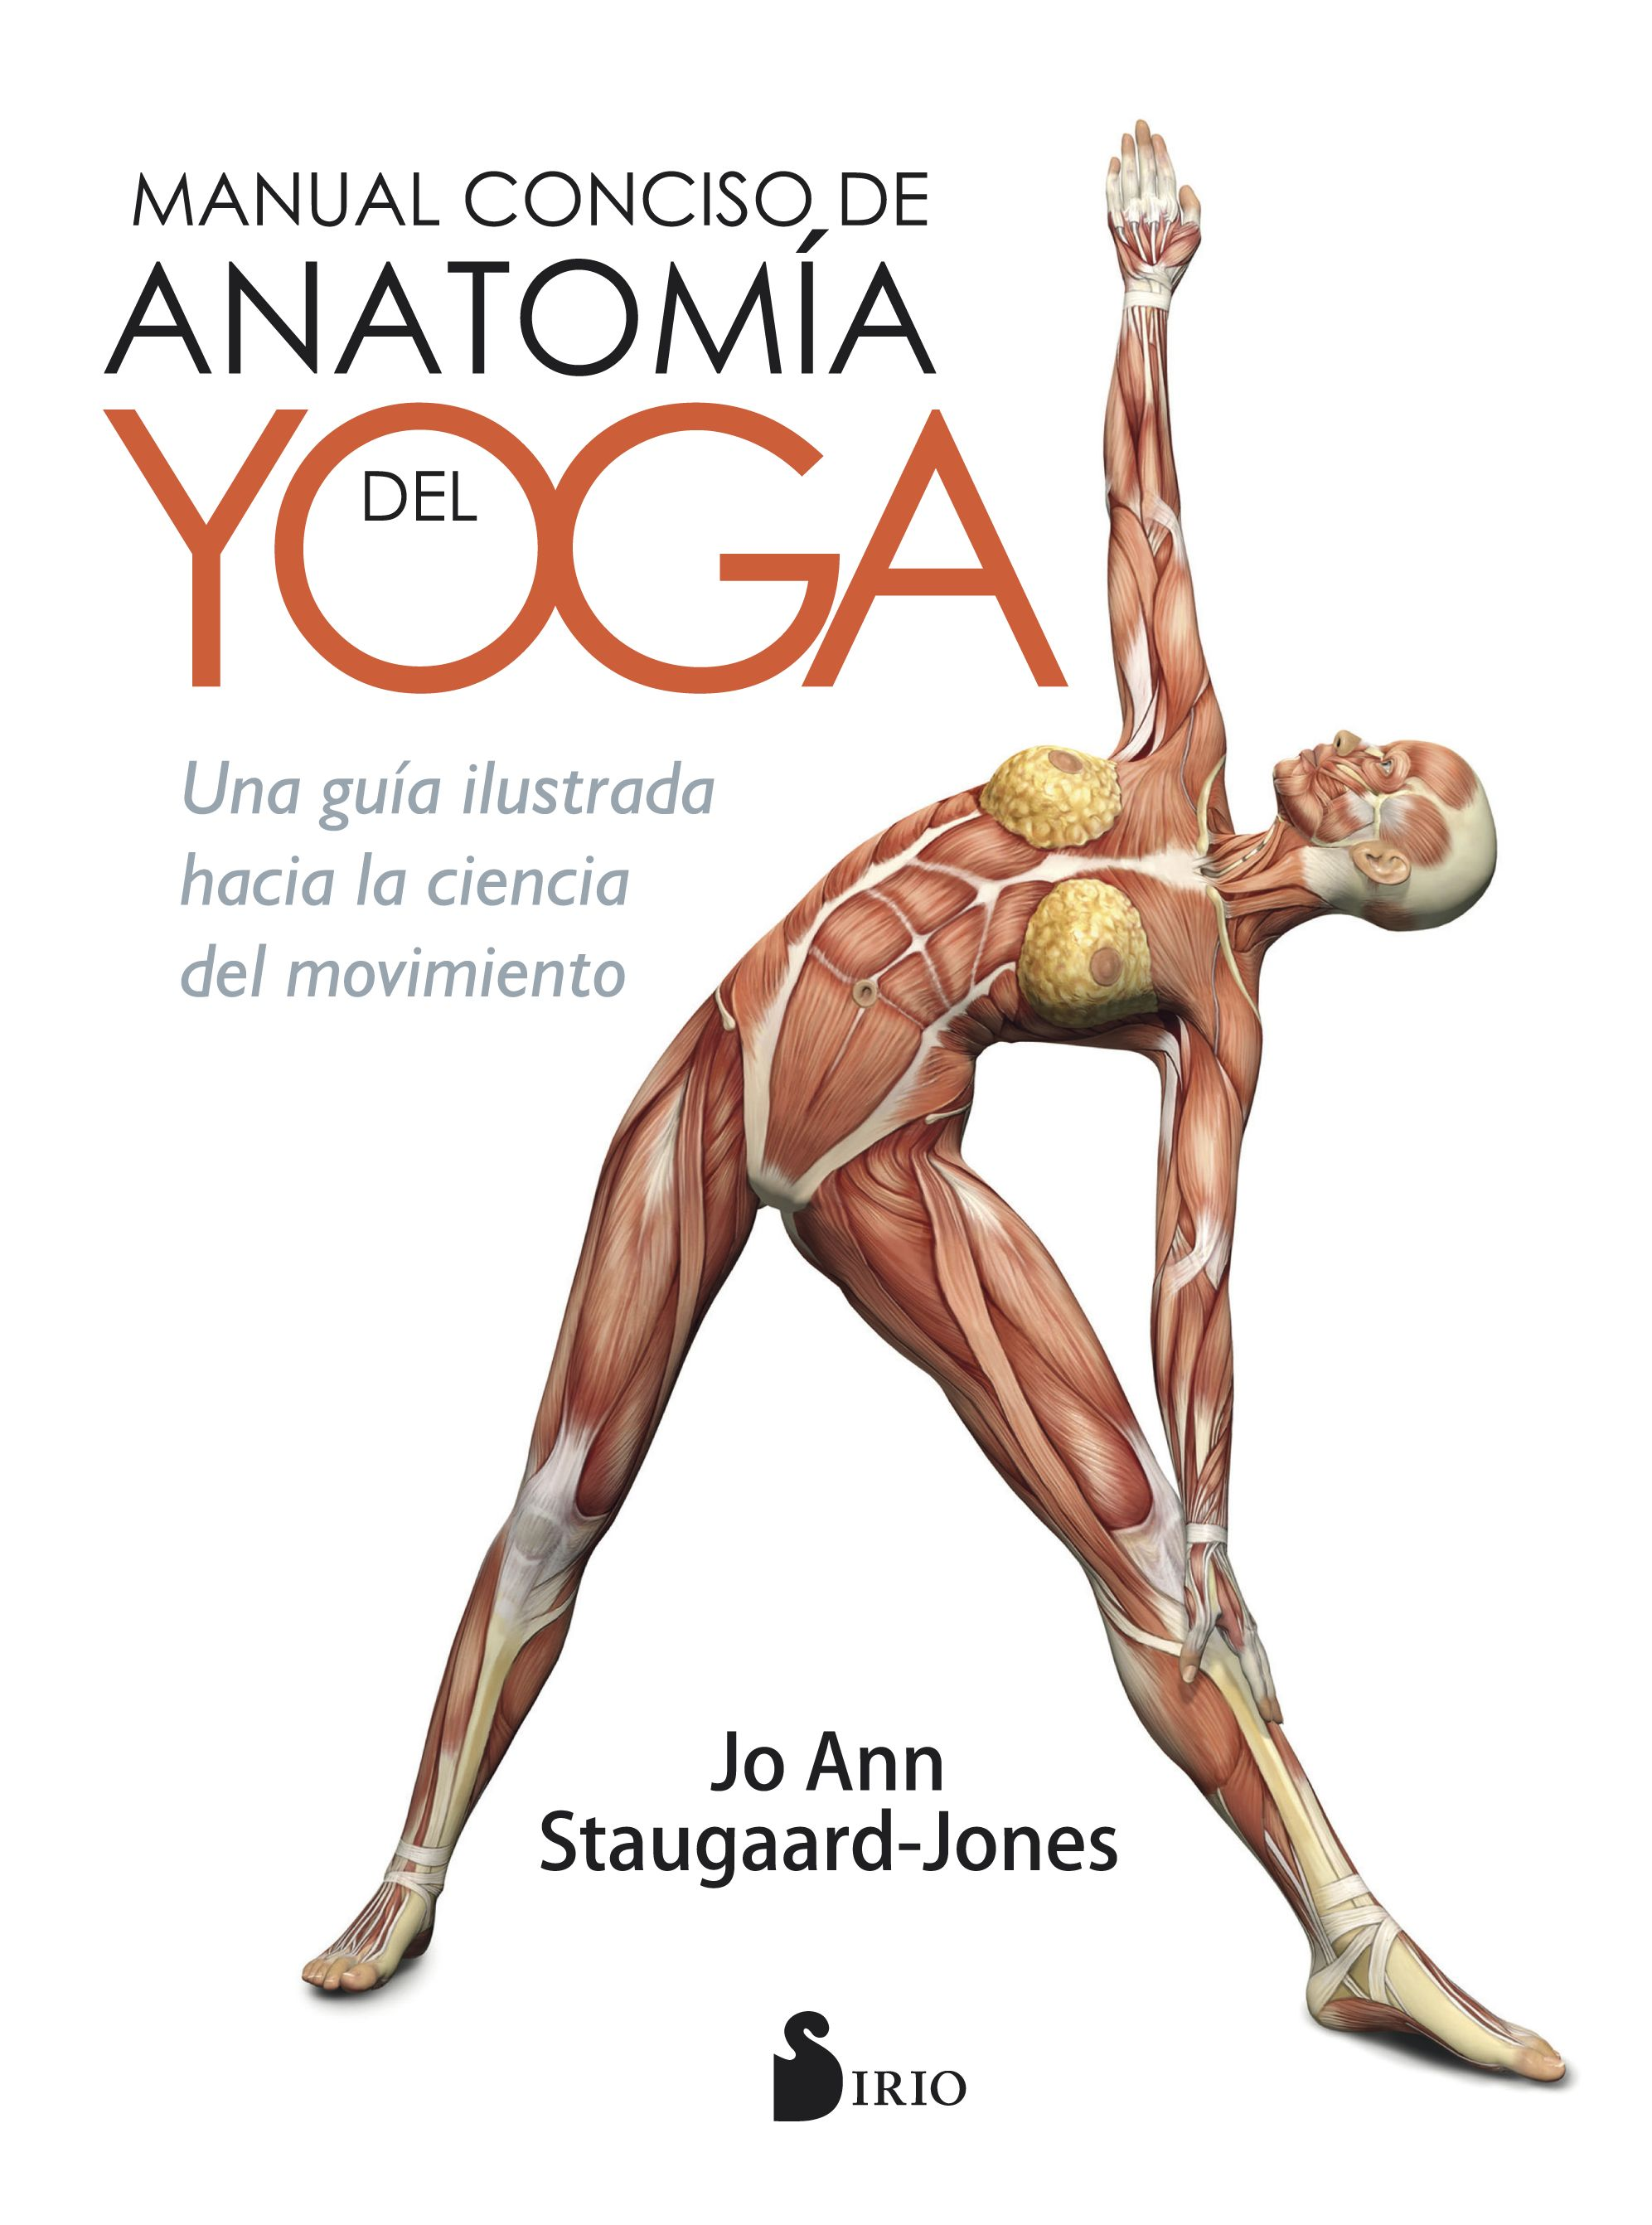 MANUAL CONCISO DE ANATOMIA DEL YOGA (9788417030292)